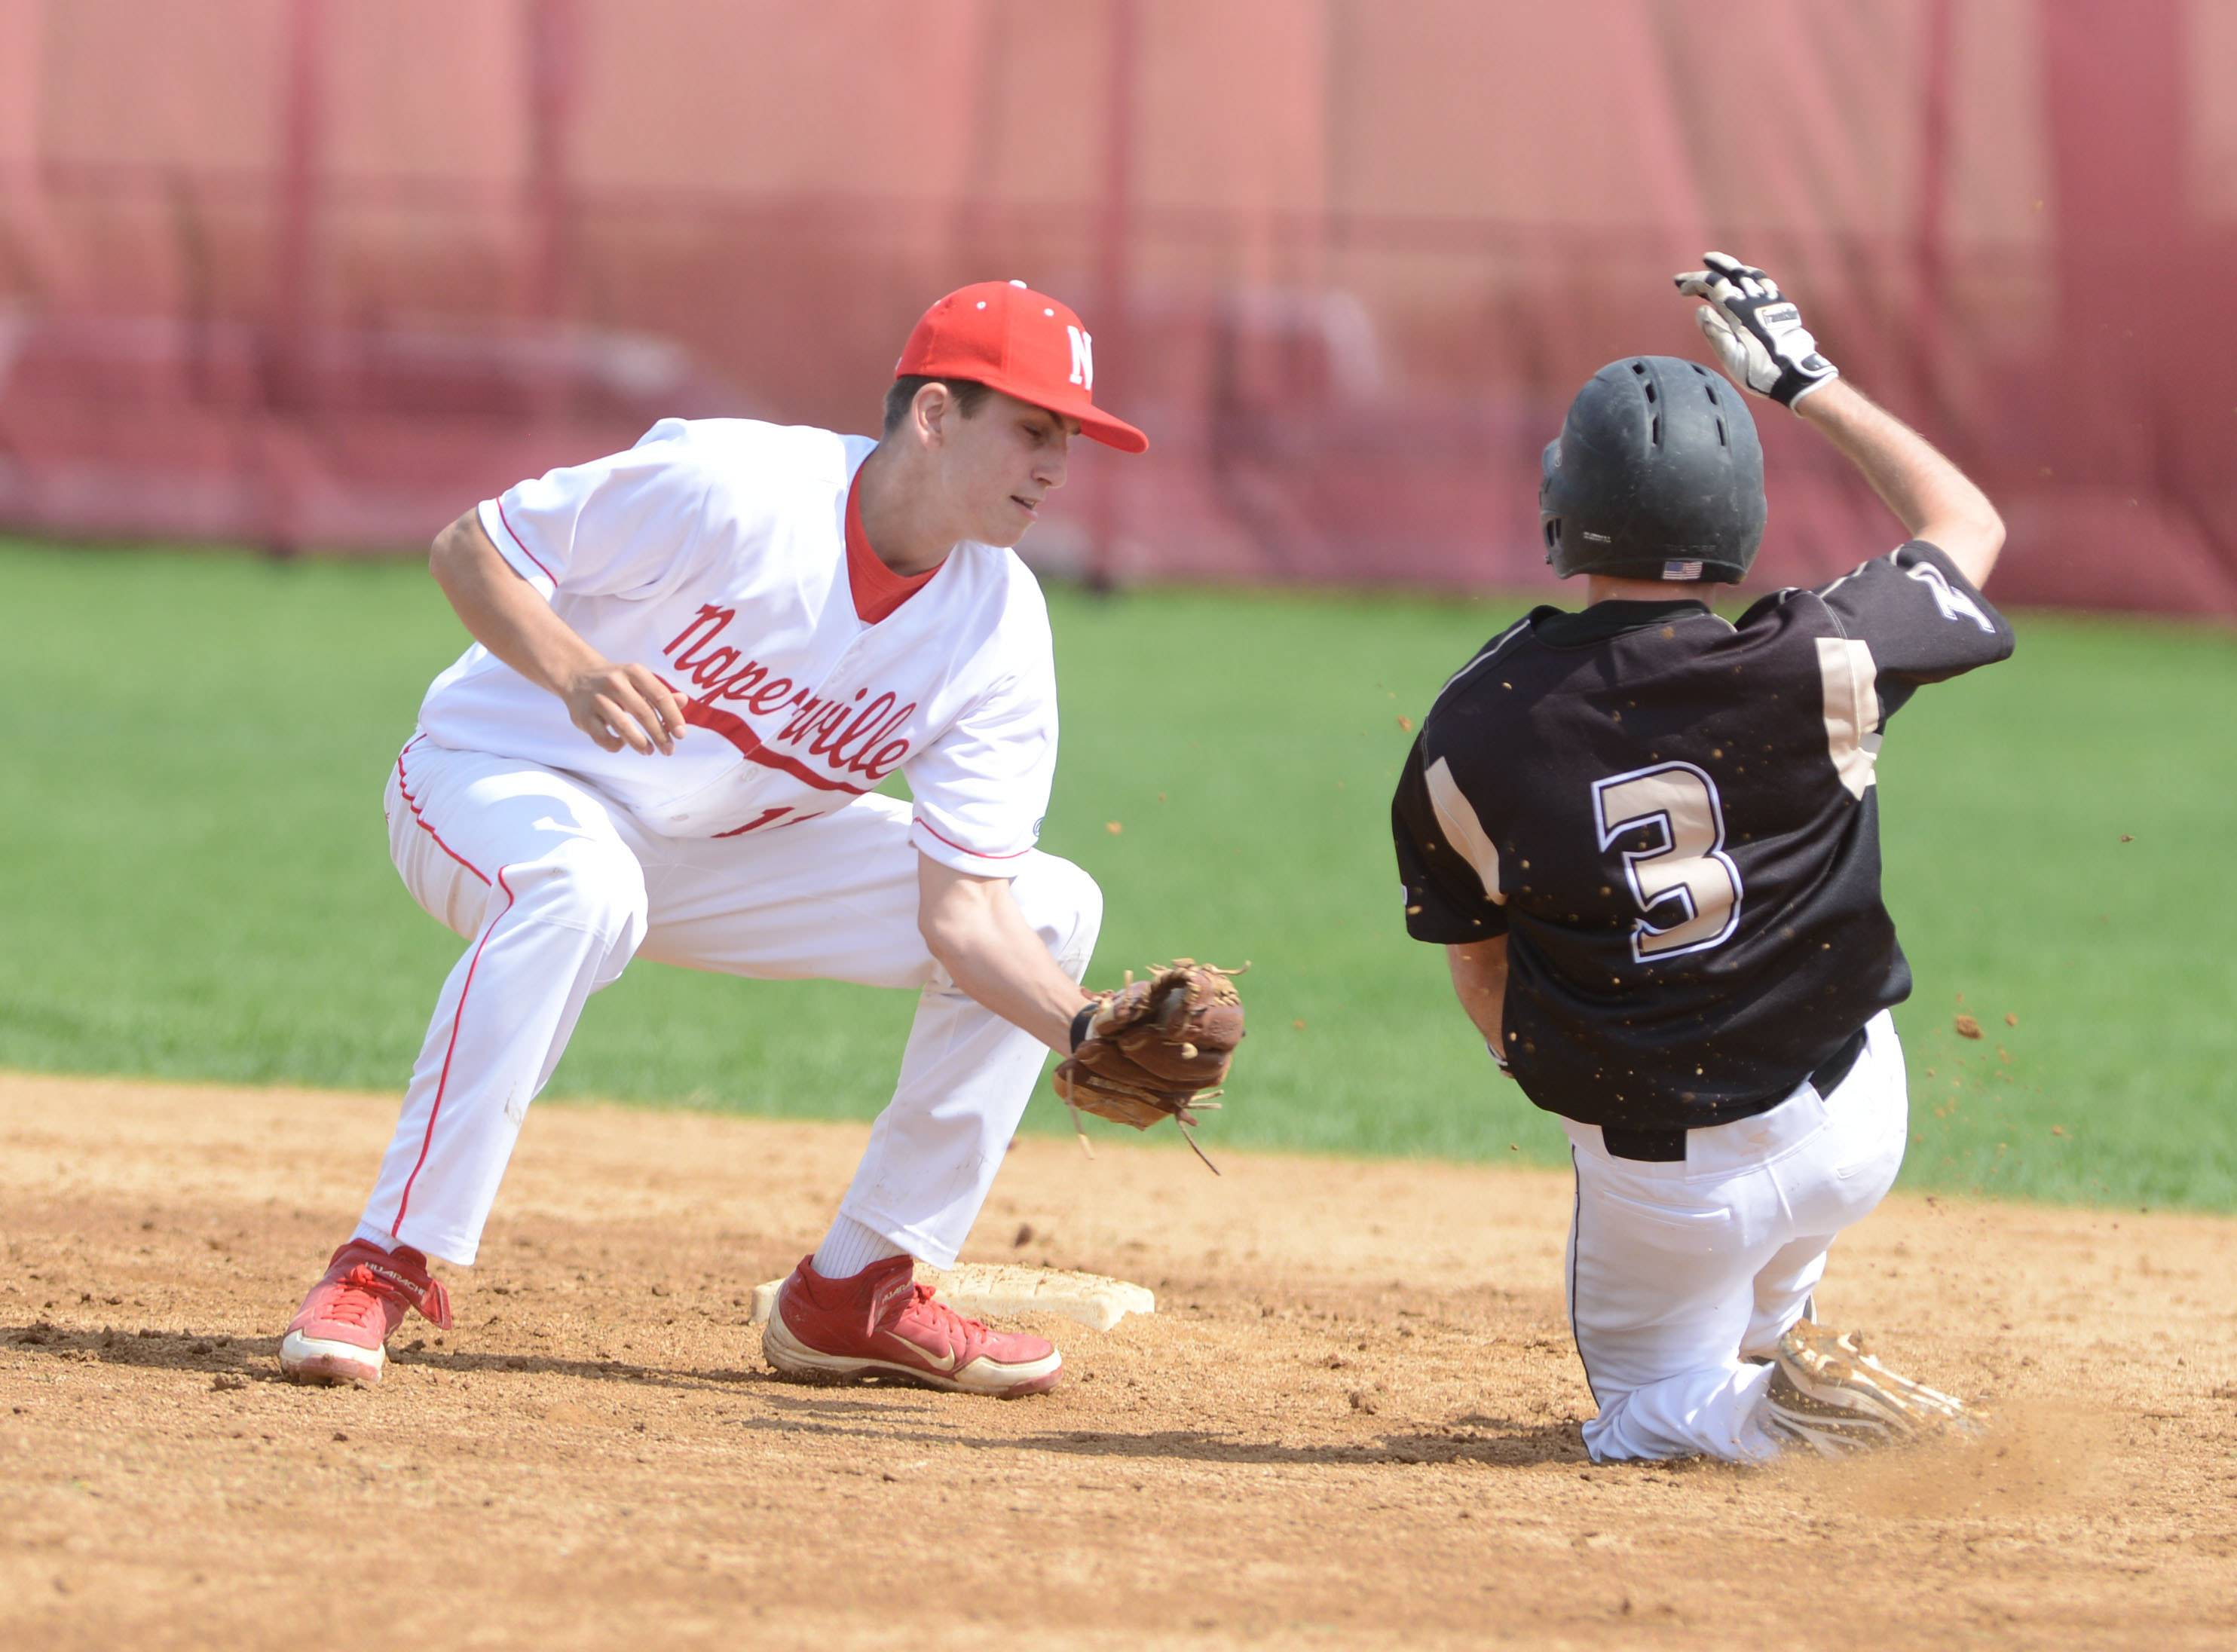 #11 of Naperville Central Michael Kolzow puts the tag on #3 Alex Barrett of Glenbard North during the Glenbard North at Naperville Central baseball game Saturday.  He was out.